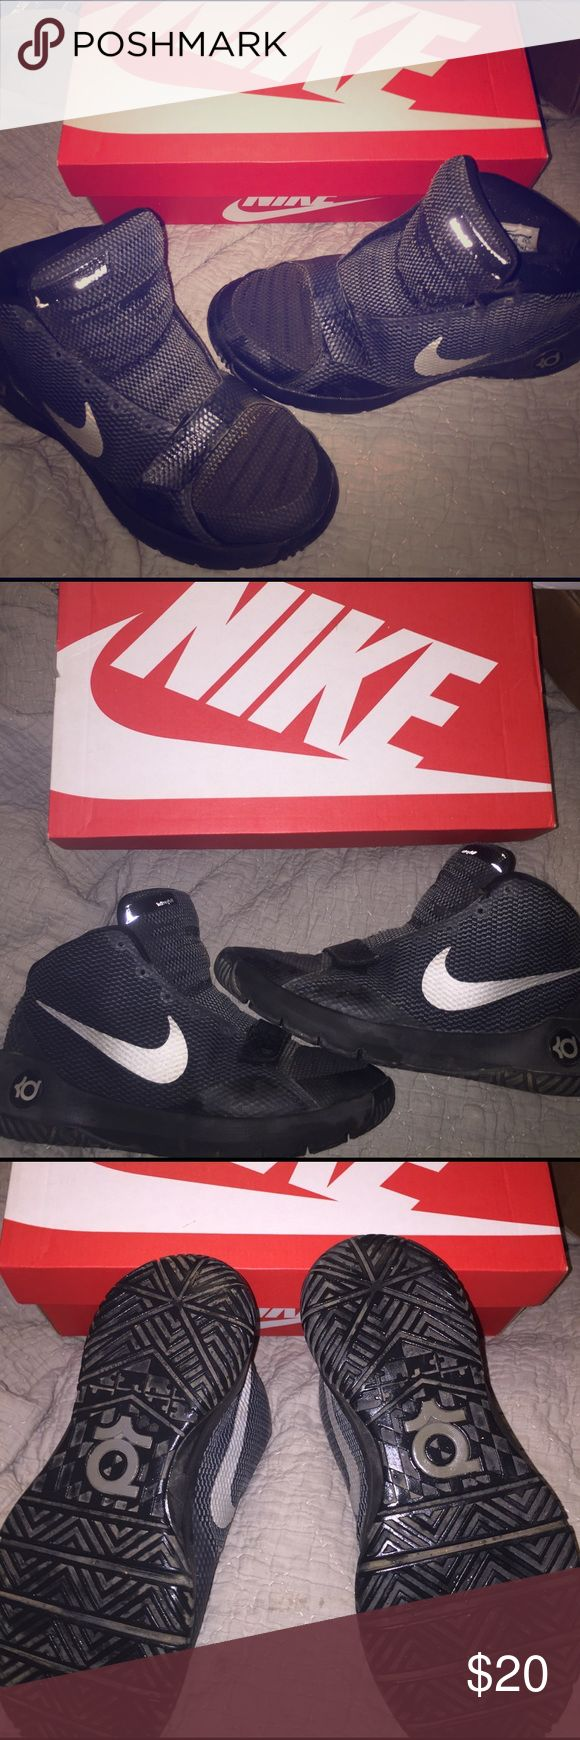 Nike KD boys size 6 used good condition no laces Black and grey Nike KD high top sneakers, no laces, fair to good condition, soles are great, but material has some fading, 🐱🚬🏡 Nike Shoes Sneakers